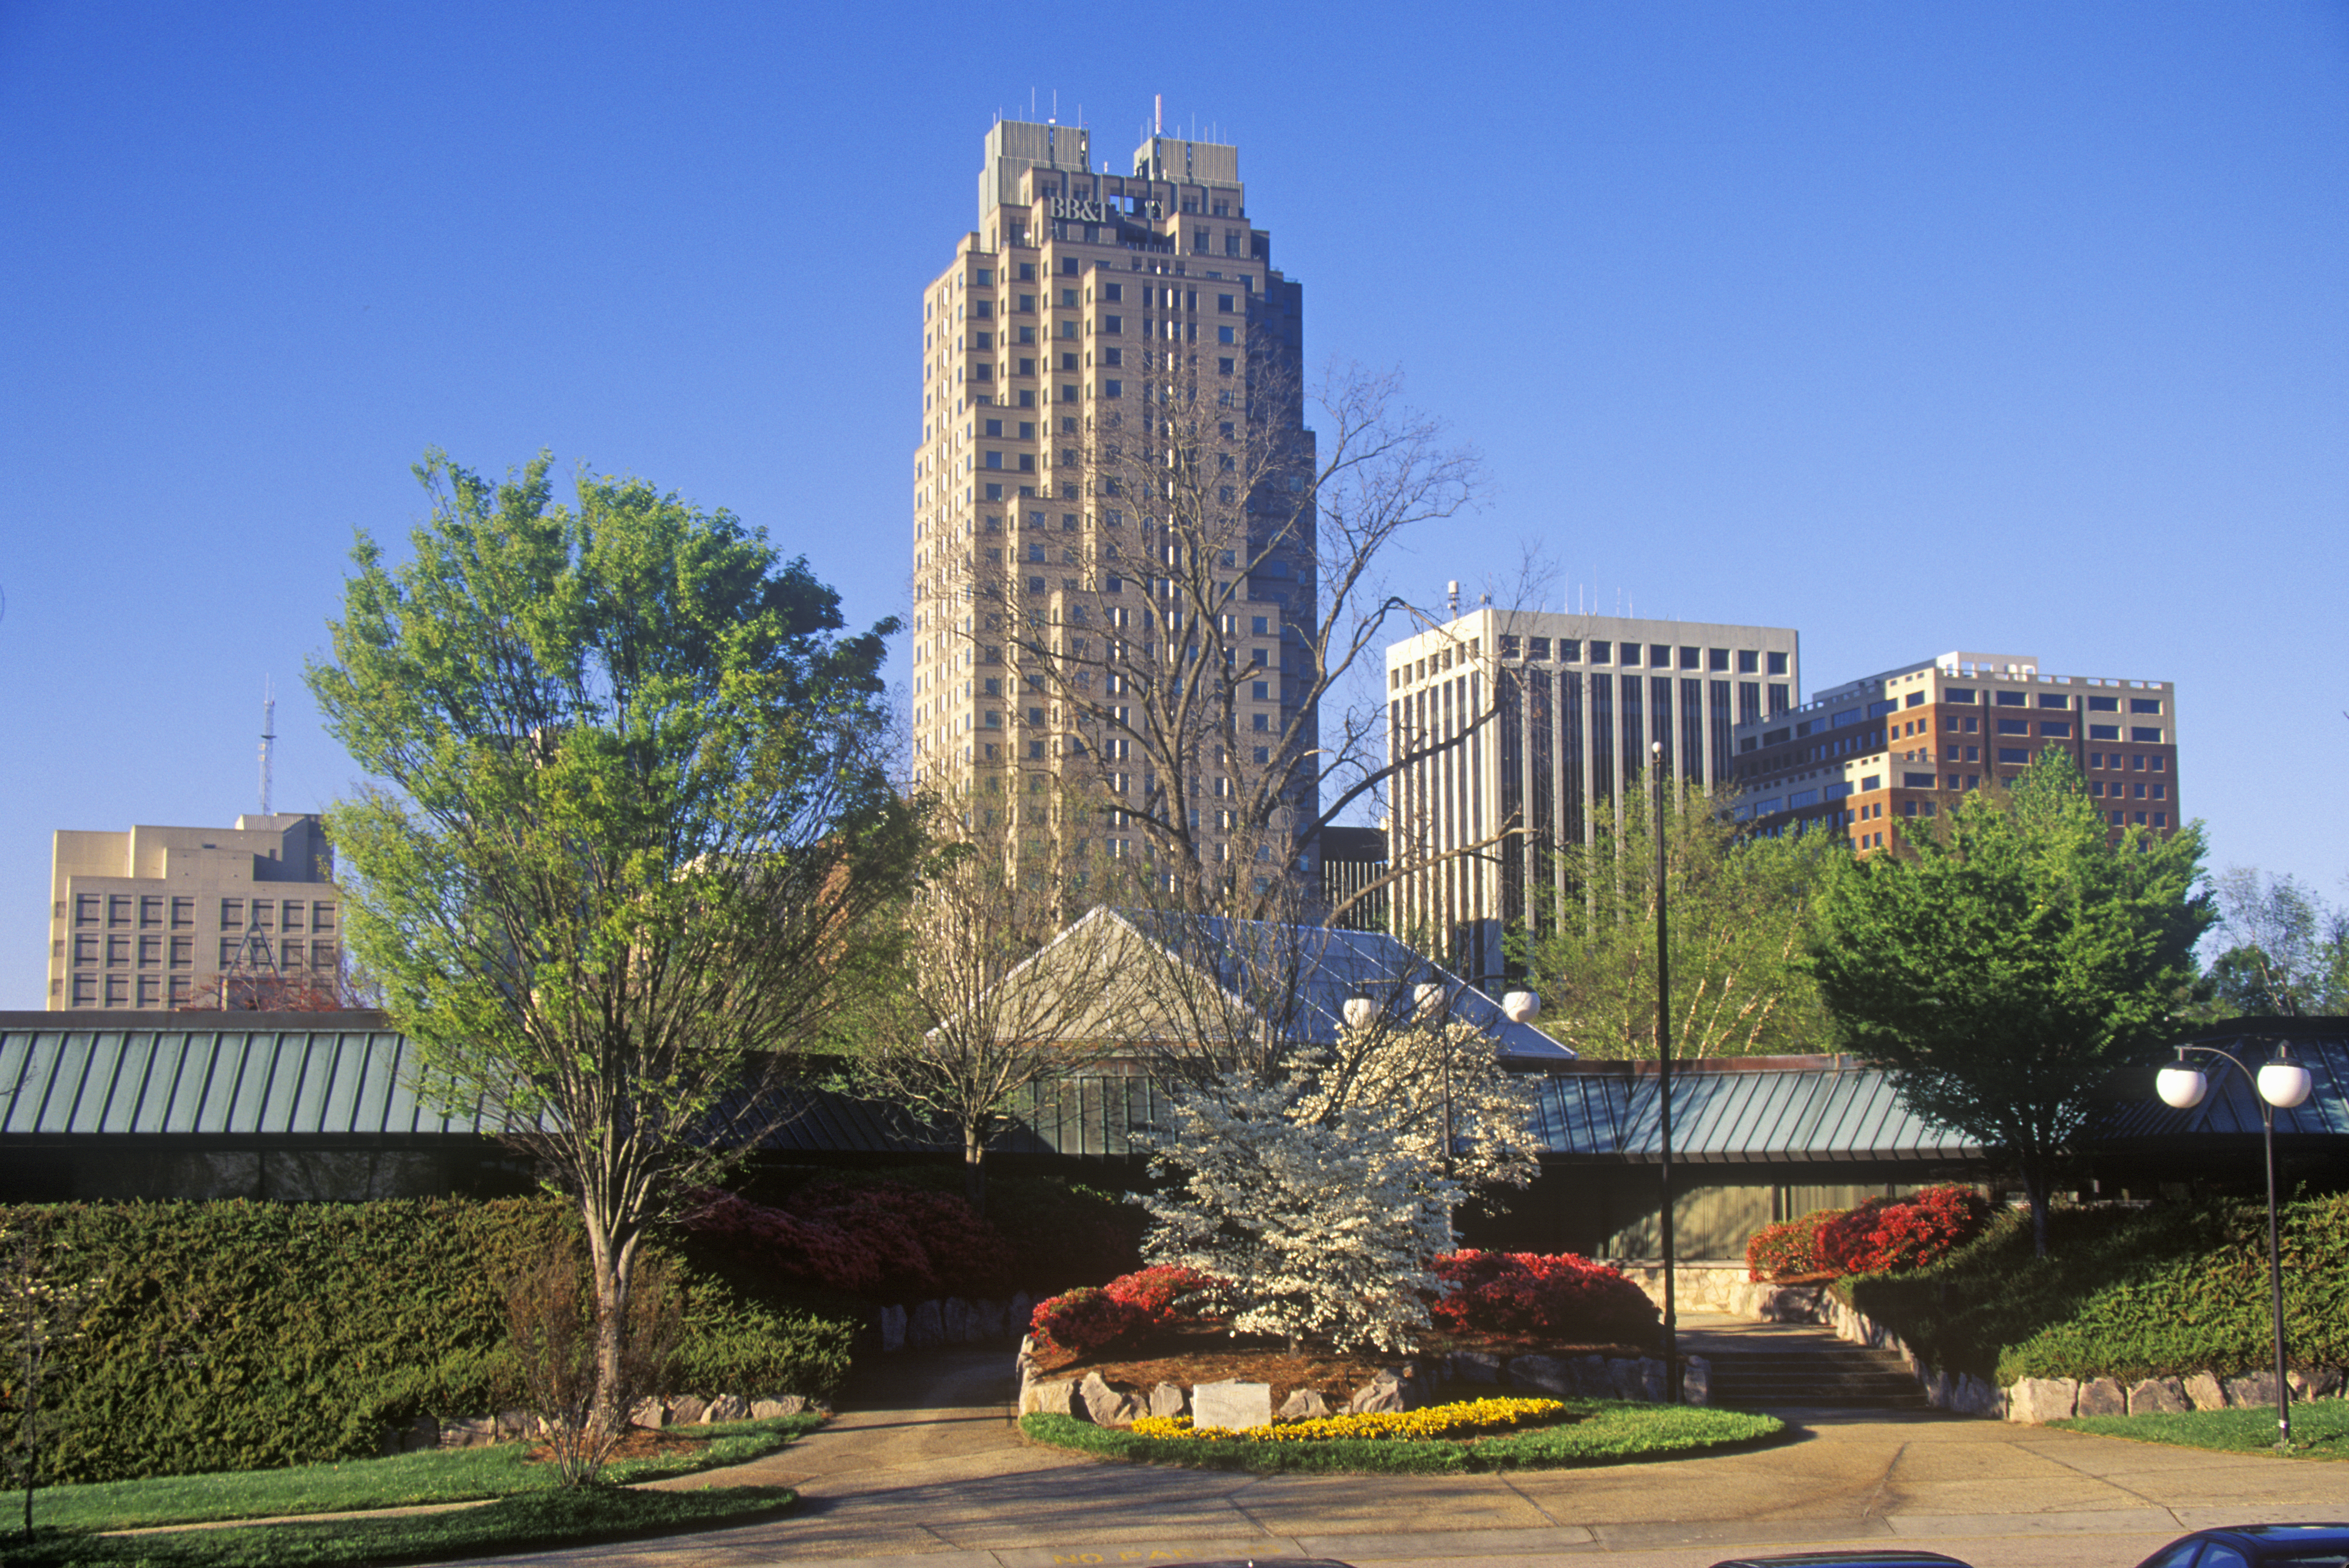 Chamber of Commerce, Raleigh, NC